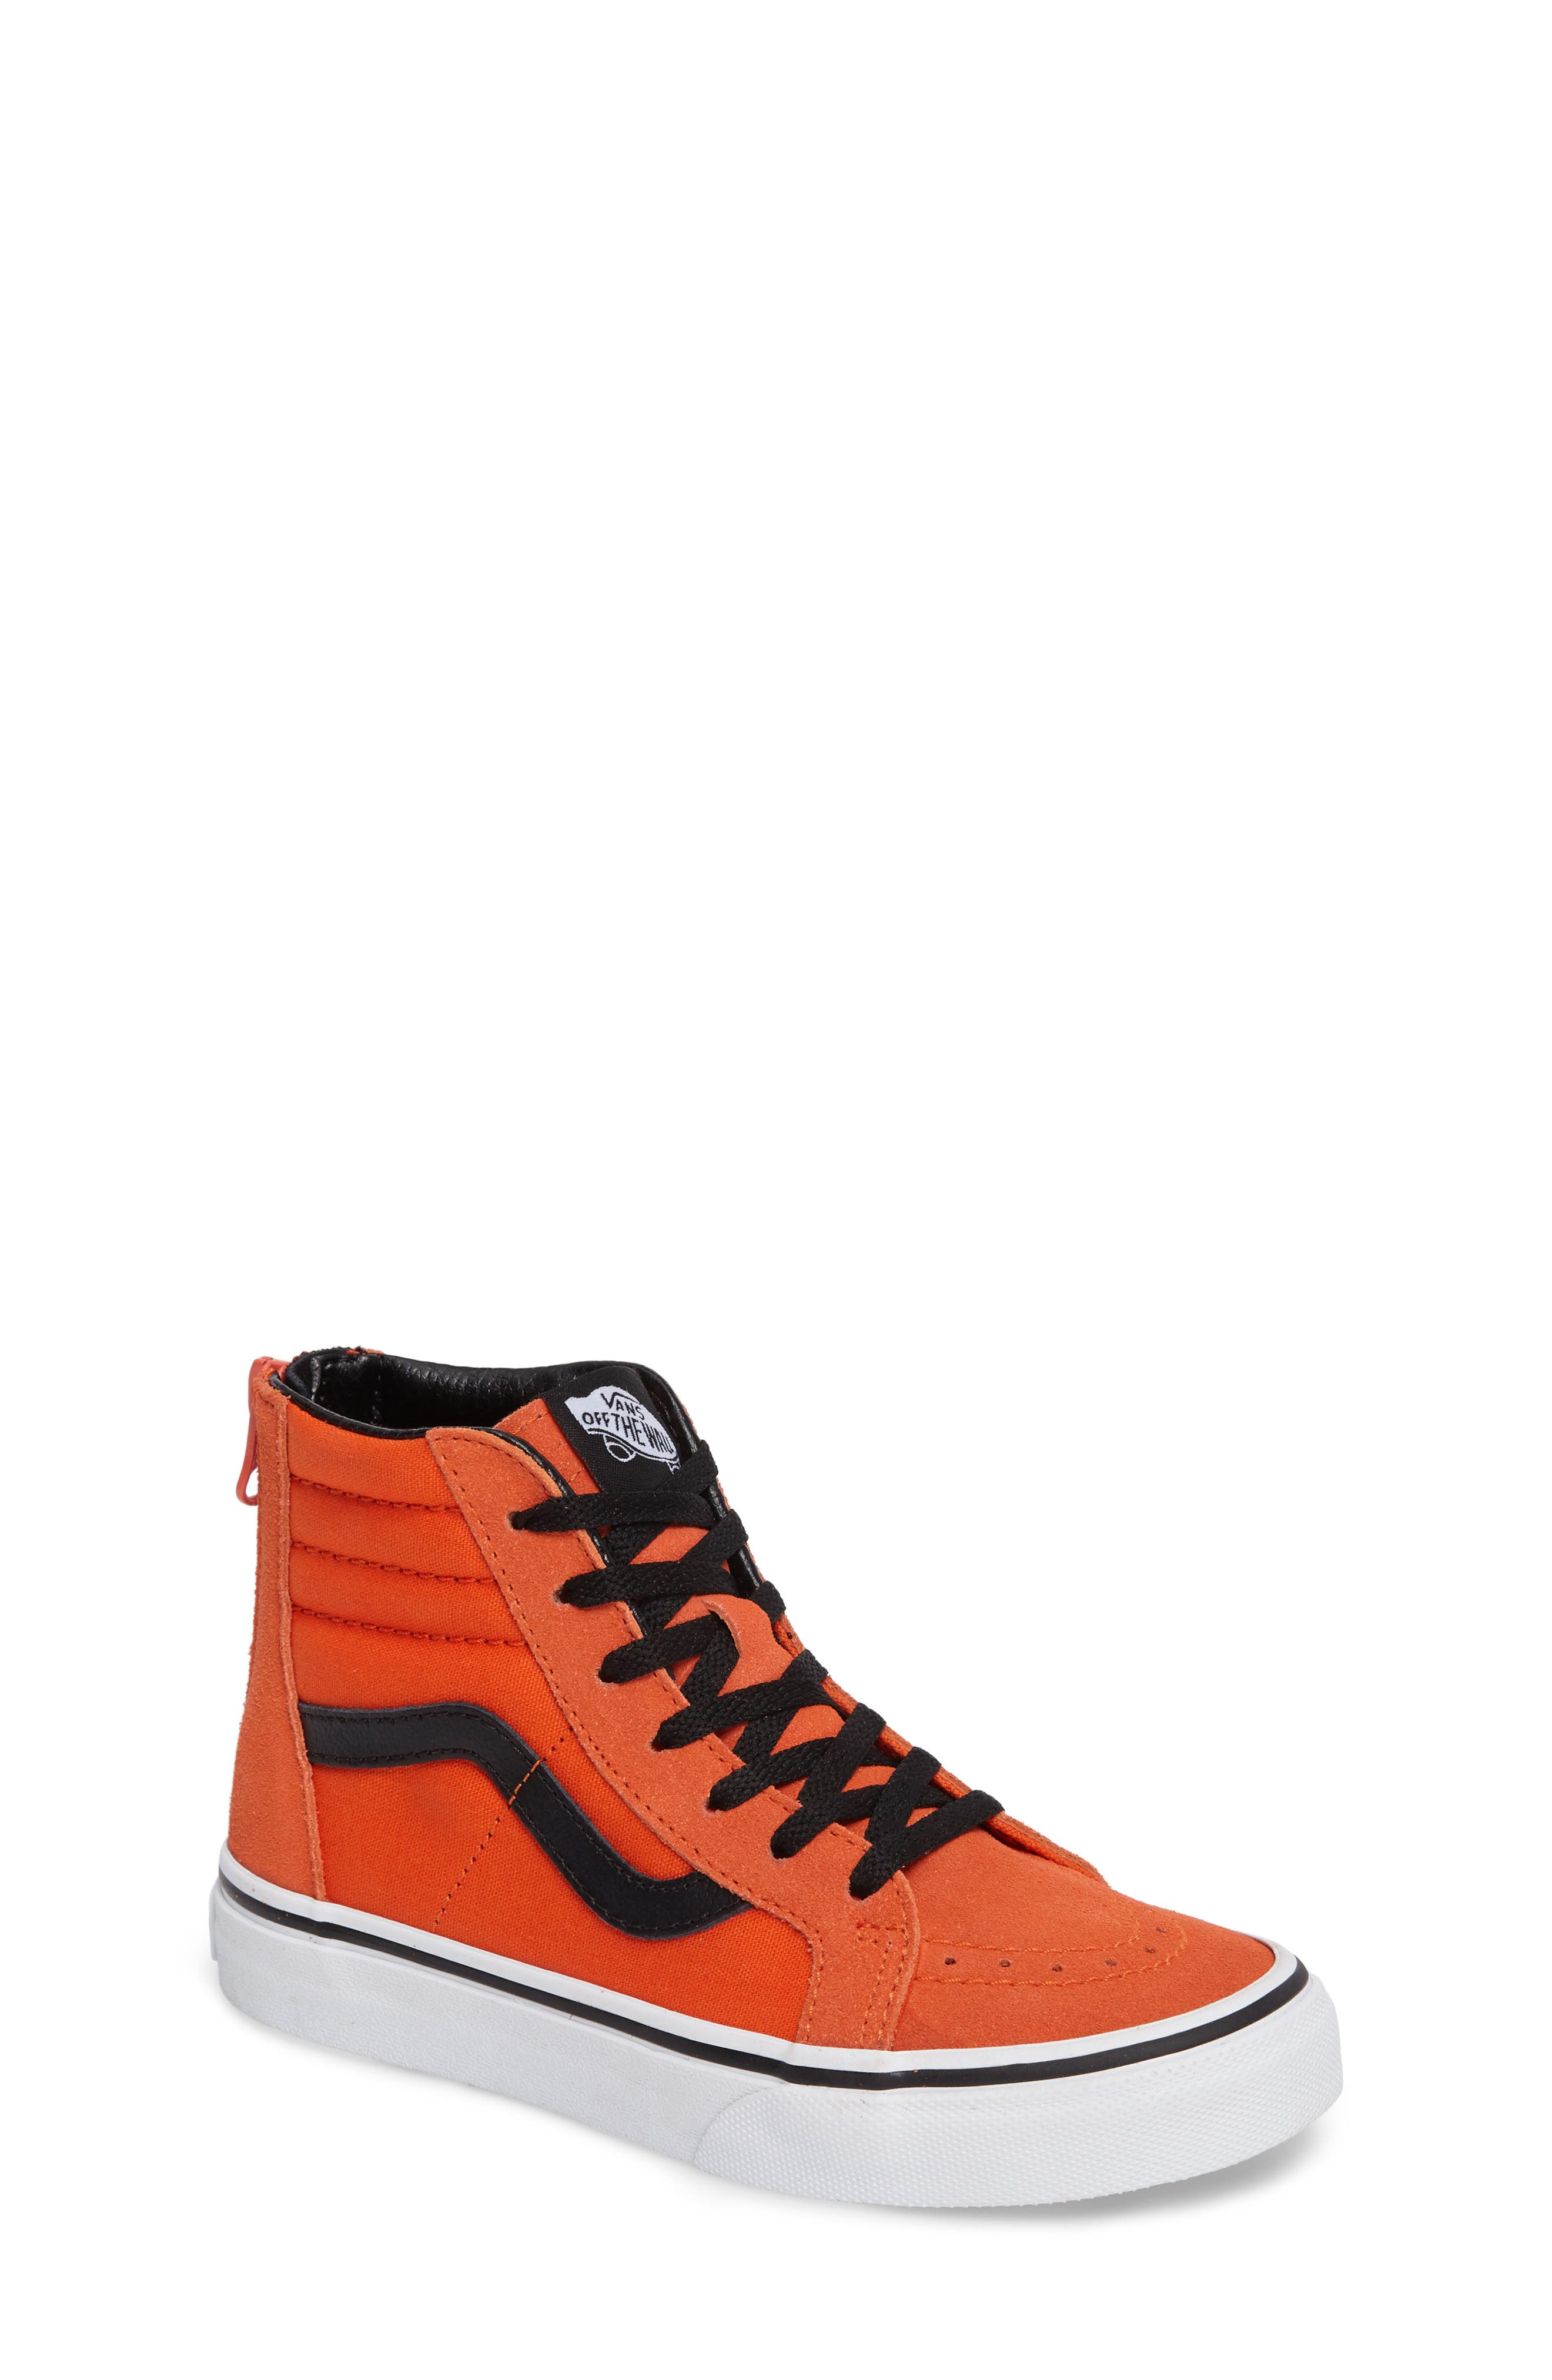 Vans 'Sk8-Hi' Sneaker (Baby, Walker, Toddler, Little Kid & Big Kid)